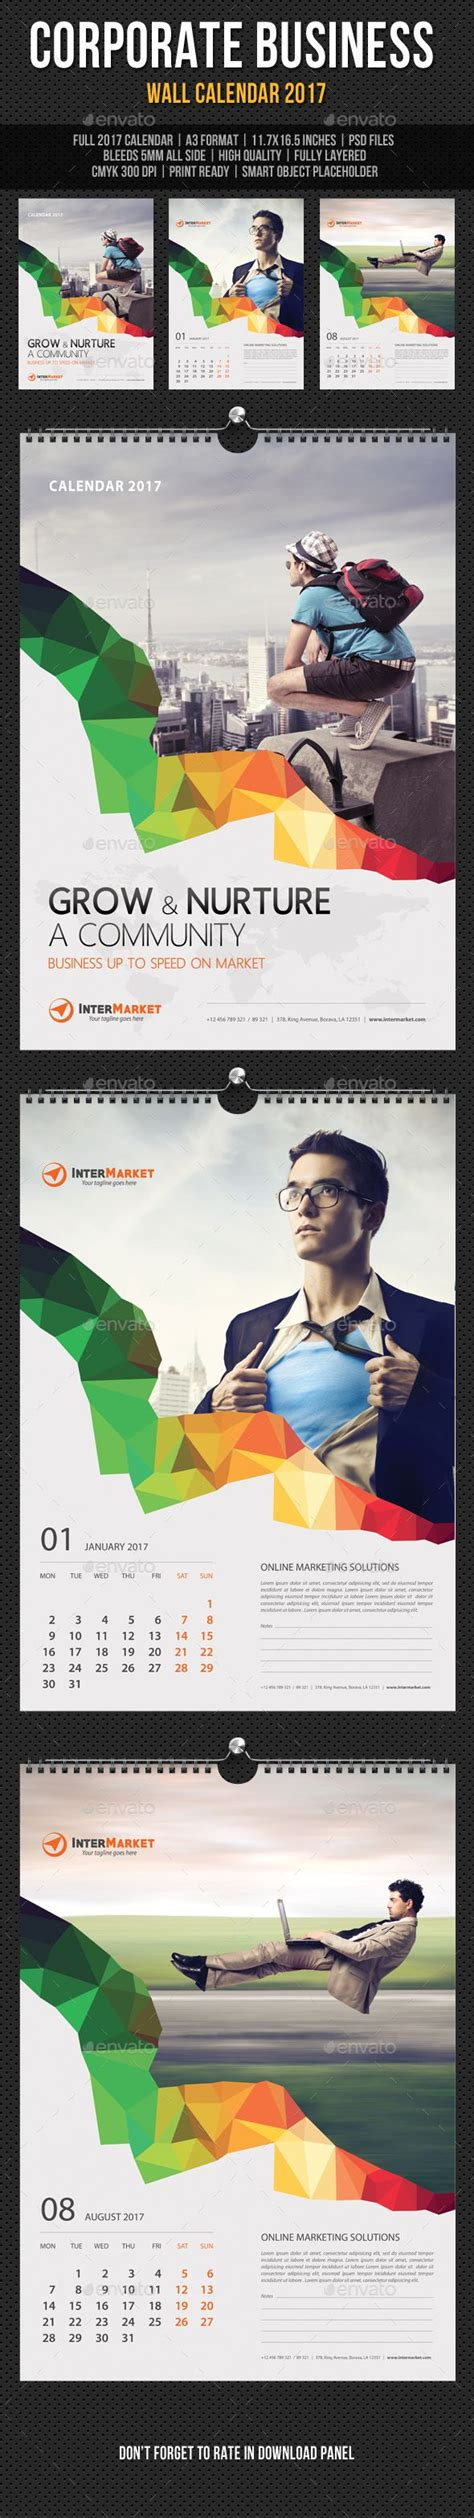 Calendar 2018 Template Design 11 Best Corporate Calendar Design Images On